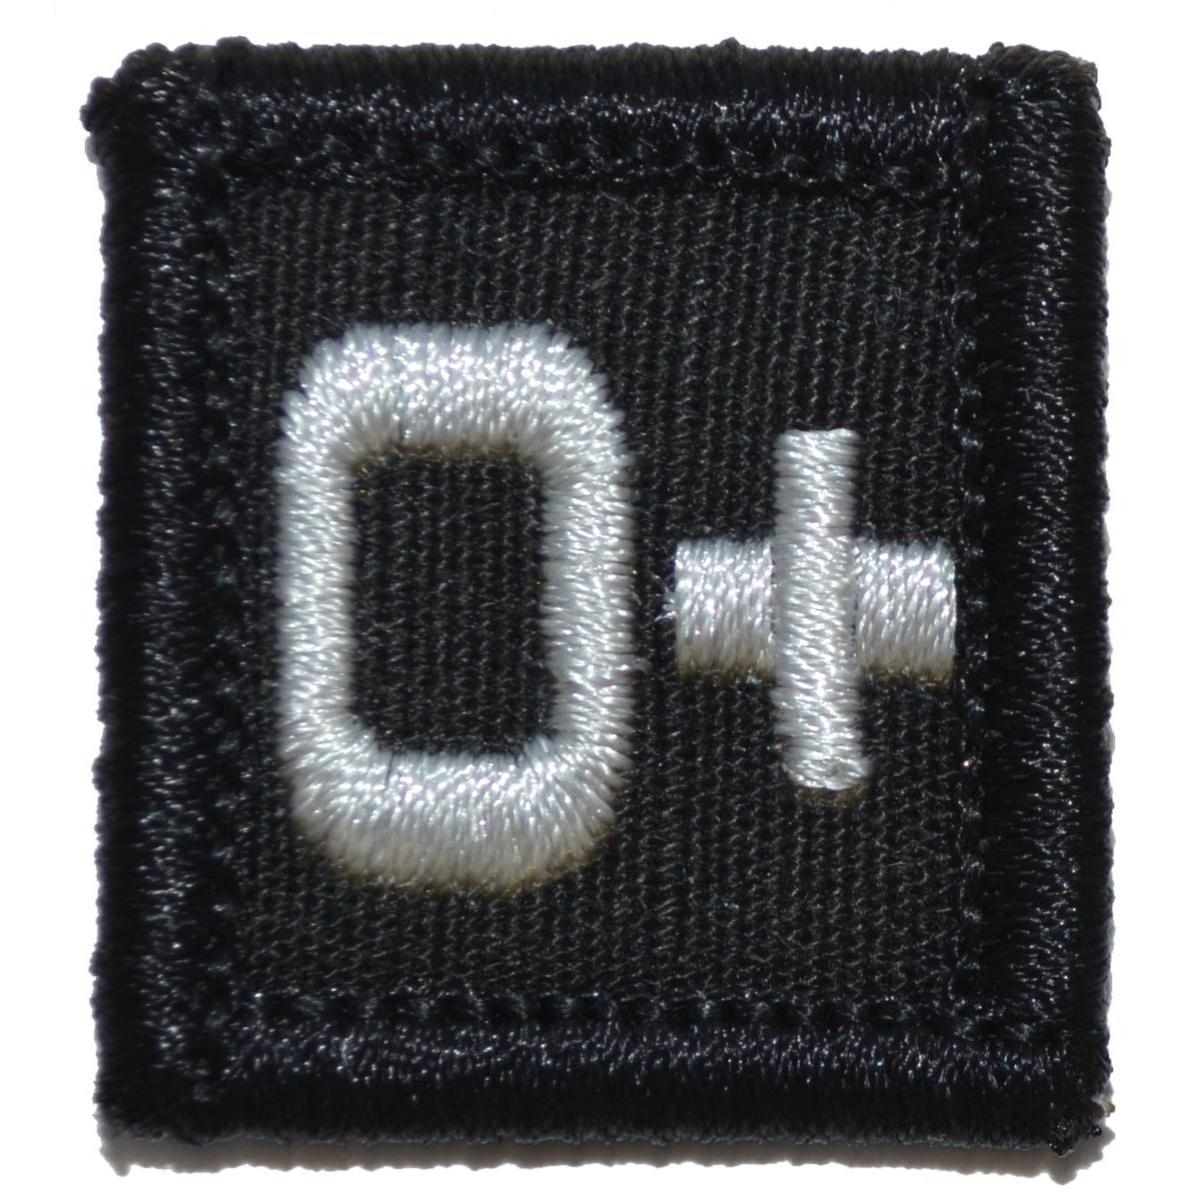 Blood Type O POS - 1x1 Patch